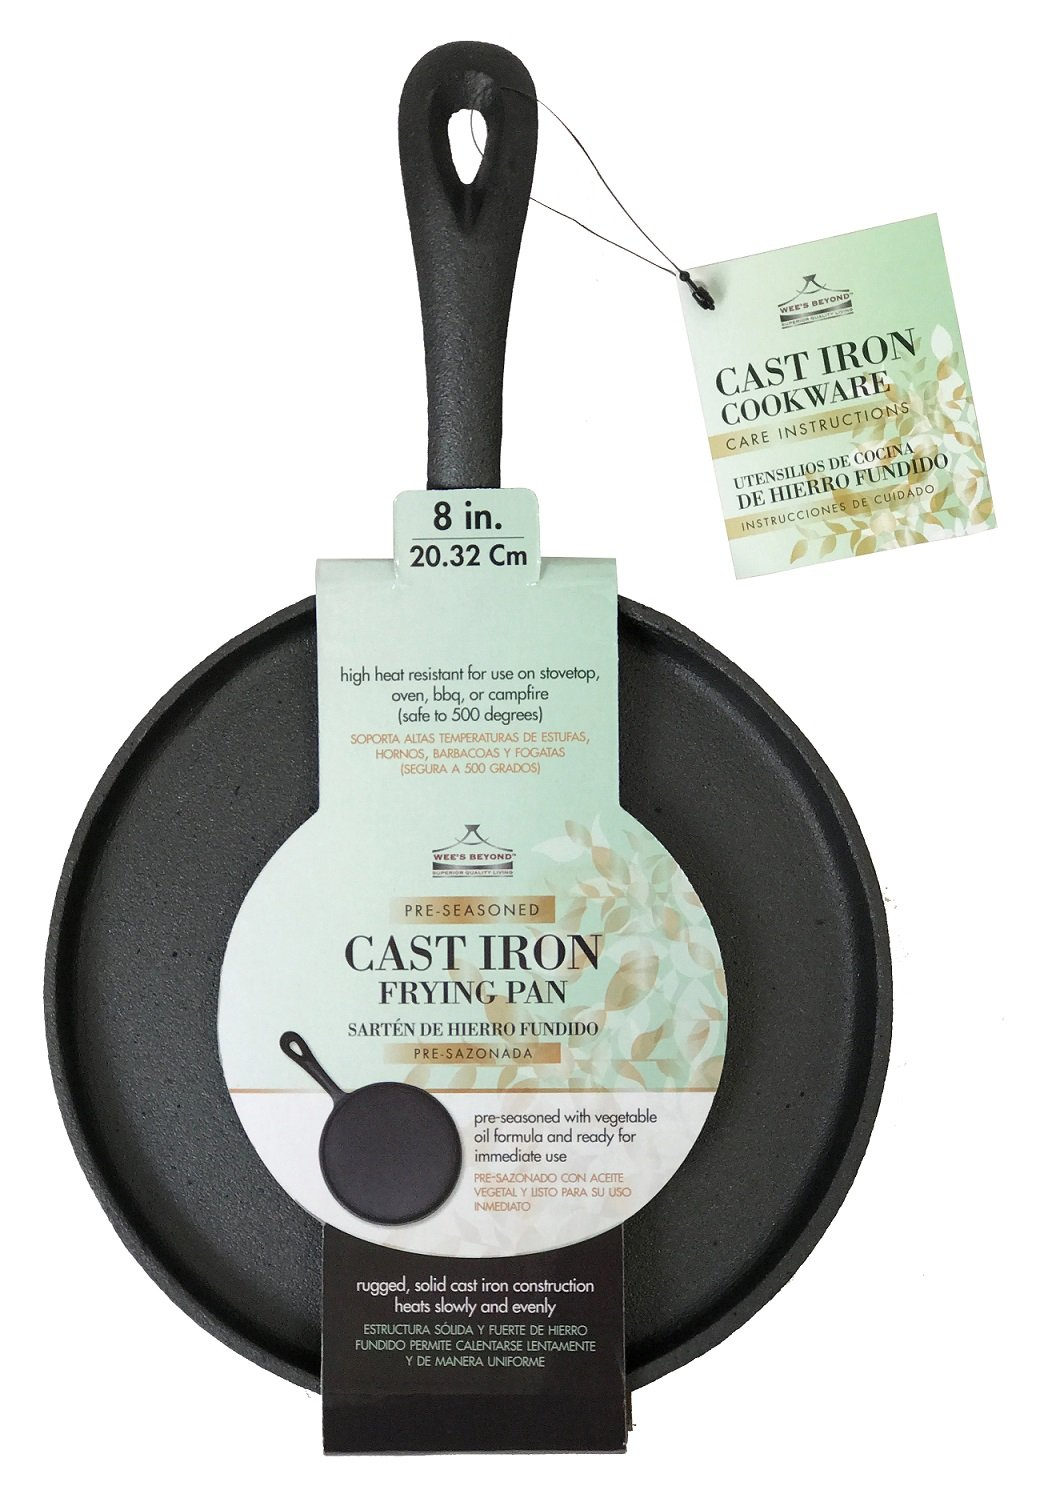 Amazon.com: Wees Beyond 5300-BF Round Pre-Seasoned Cast Iron Frying Pan, Black: Kitchen & Dining